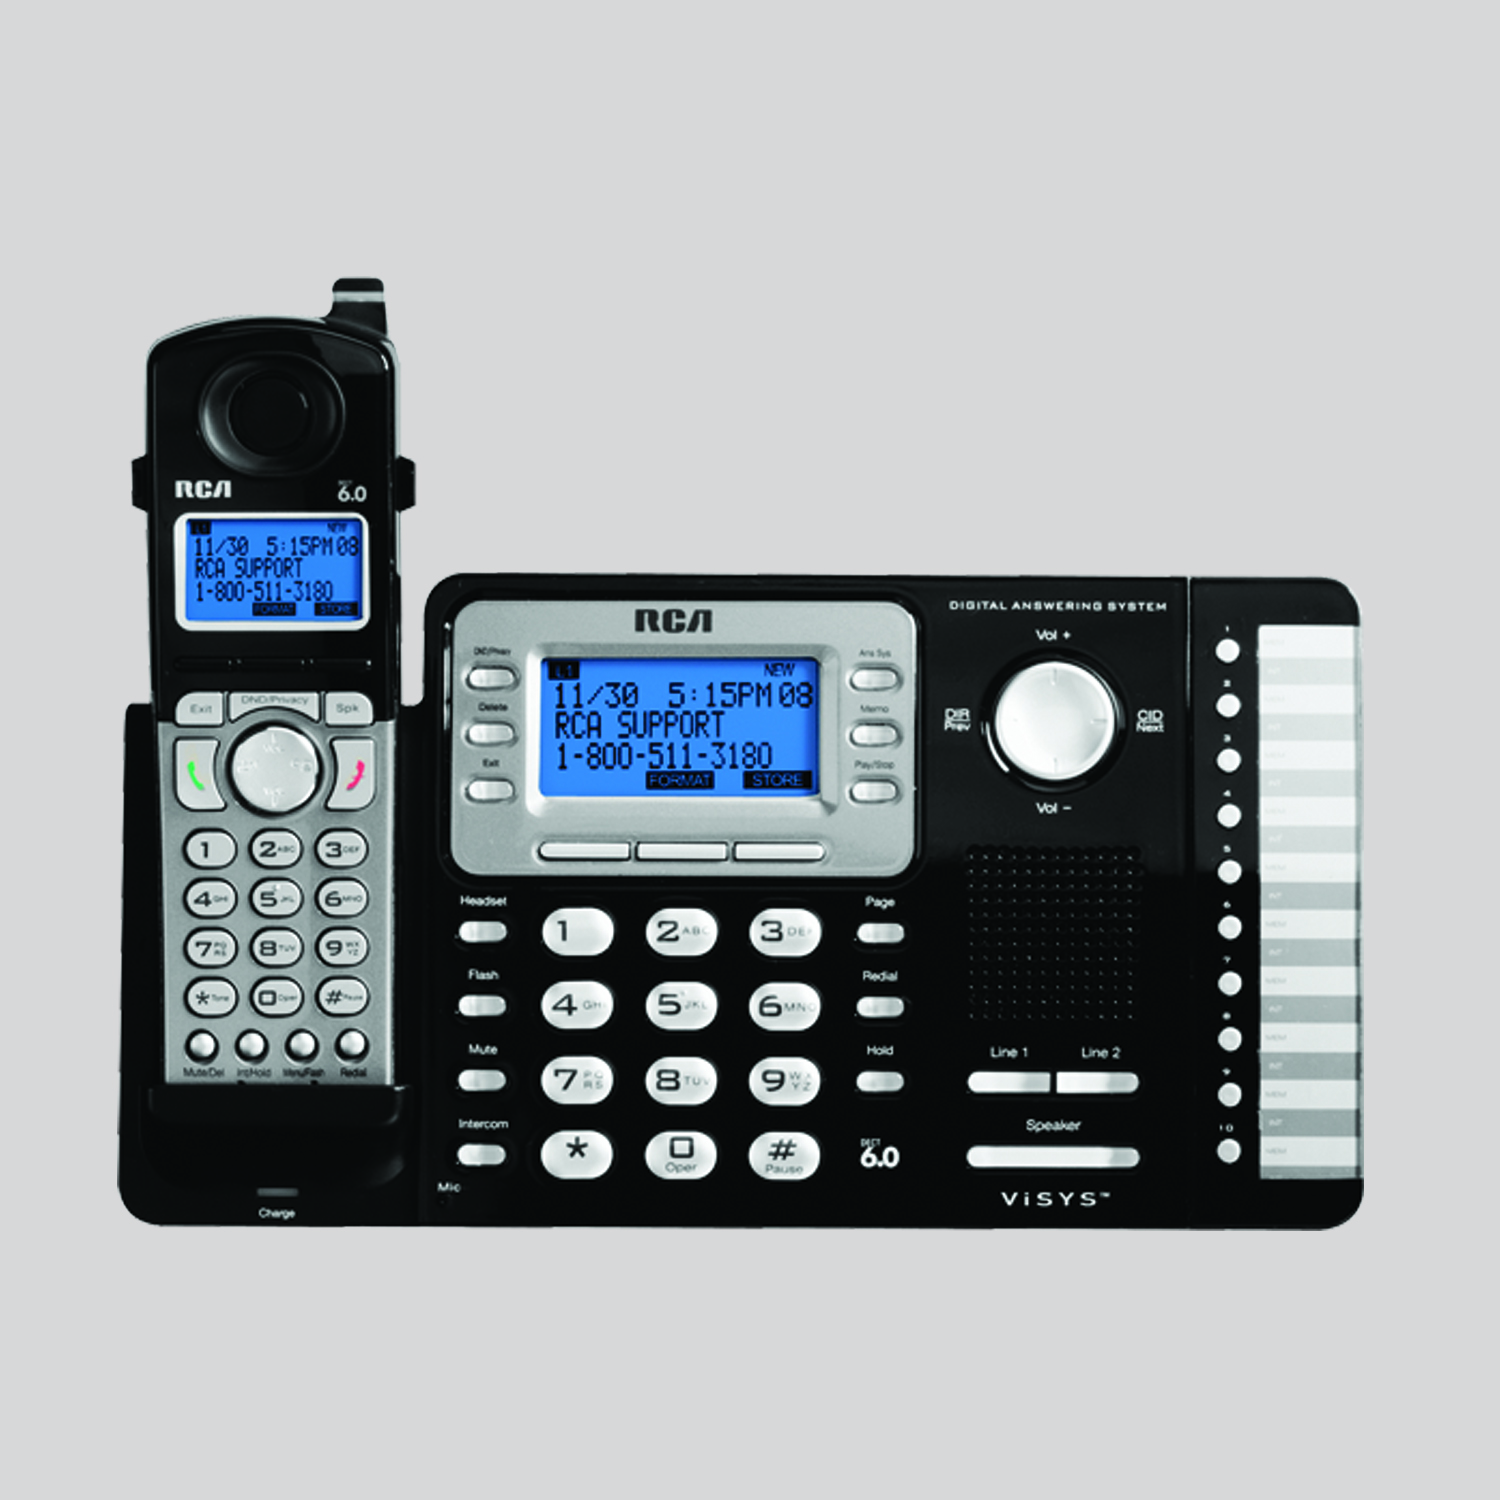 2 line cordless accessory handset does not work separately rca rh rca4business com rca 25255re2 telephone manual RCA Home Theater System